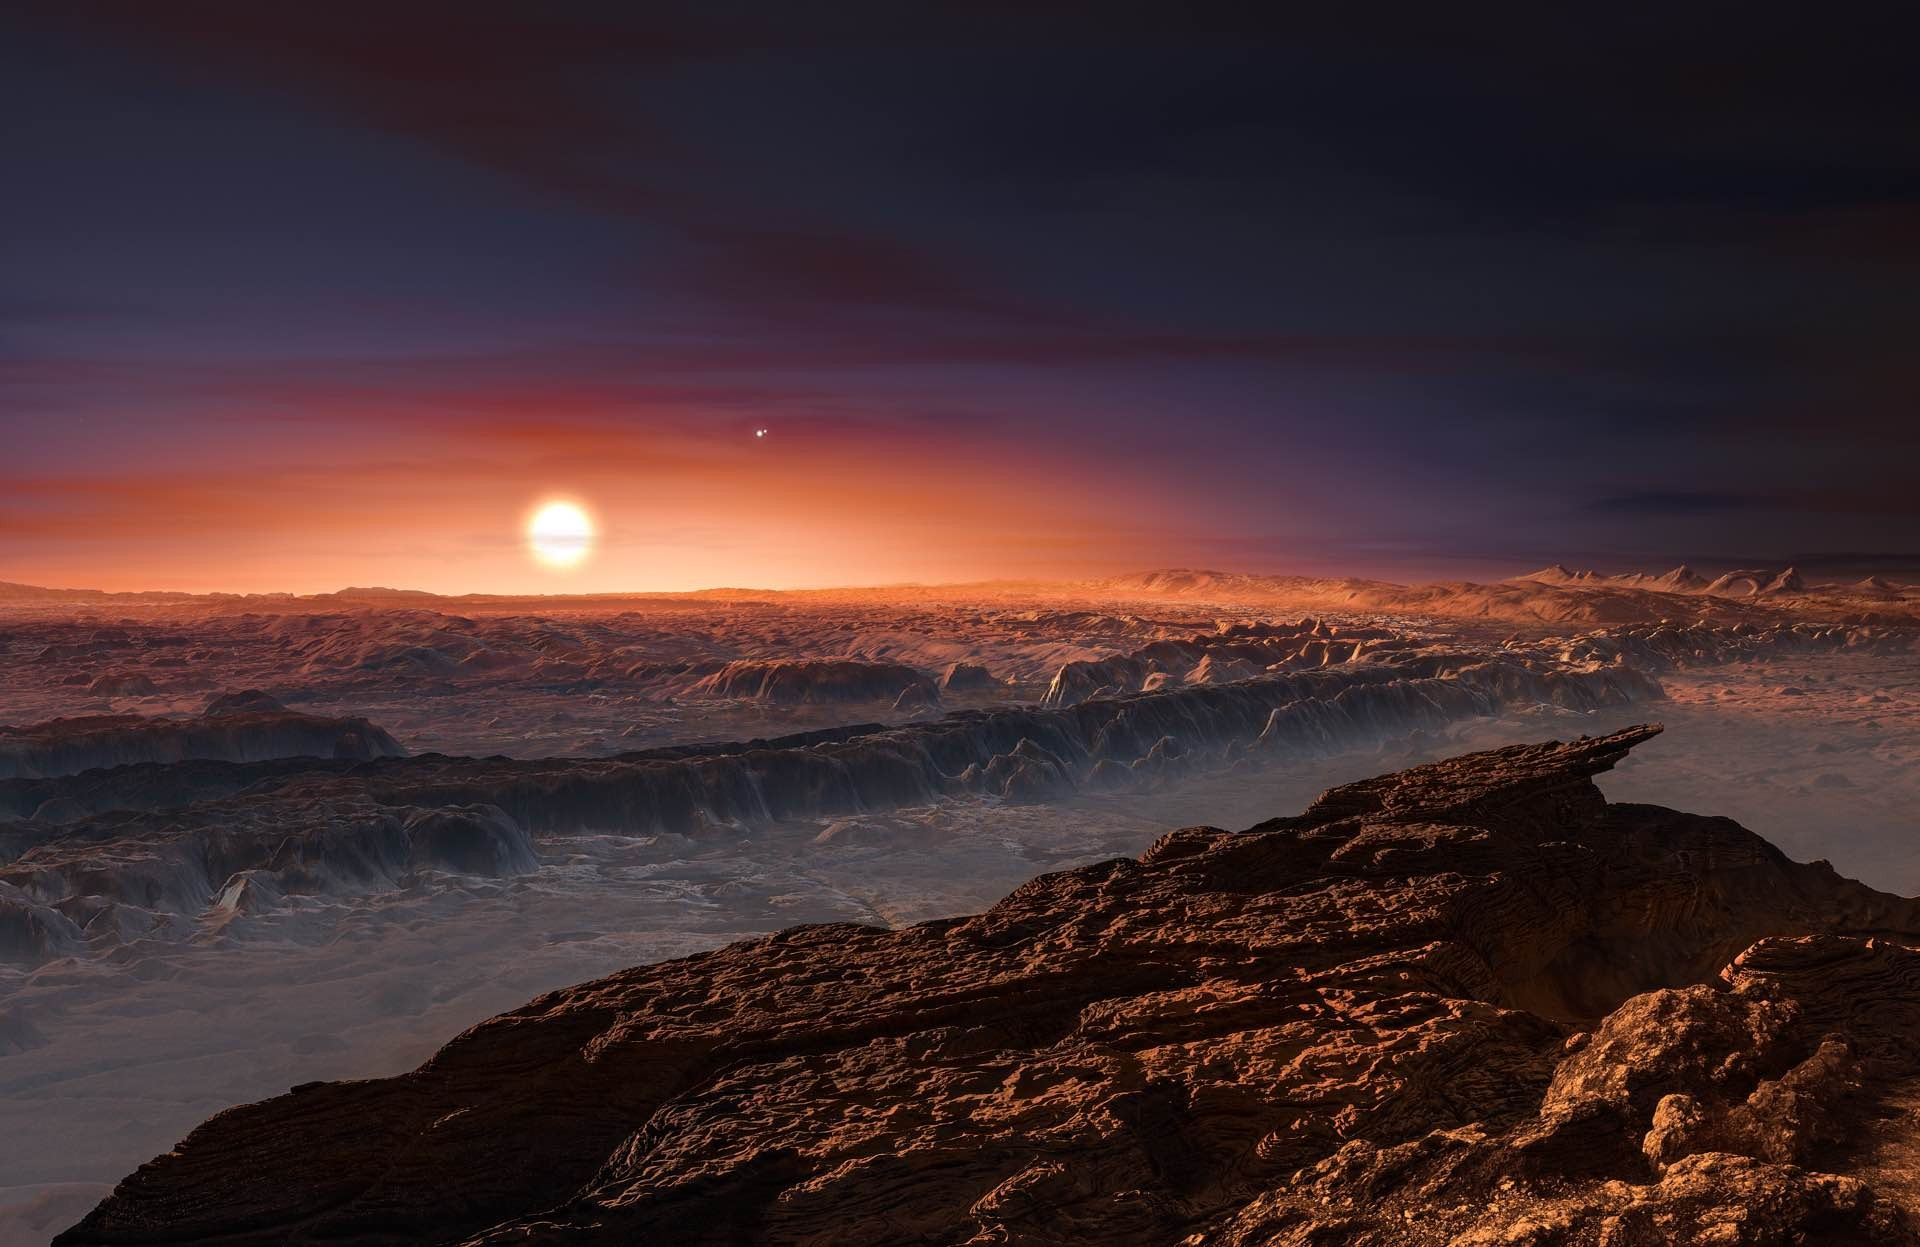 Artist's impression of Proxima b, the potentially habitable planet orbiting Proxima Centauri. Credit: ESO/M. Kornmesser